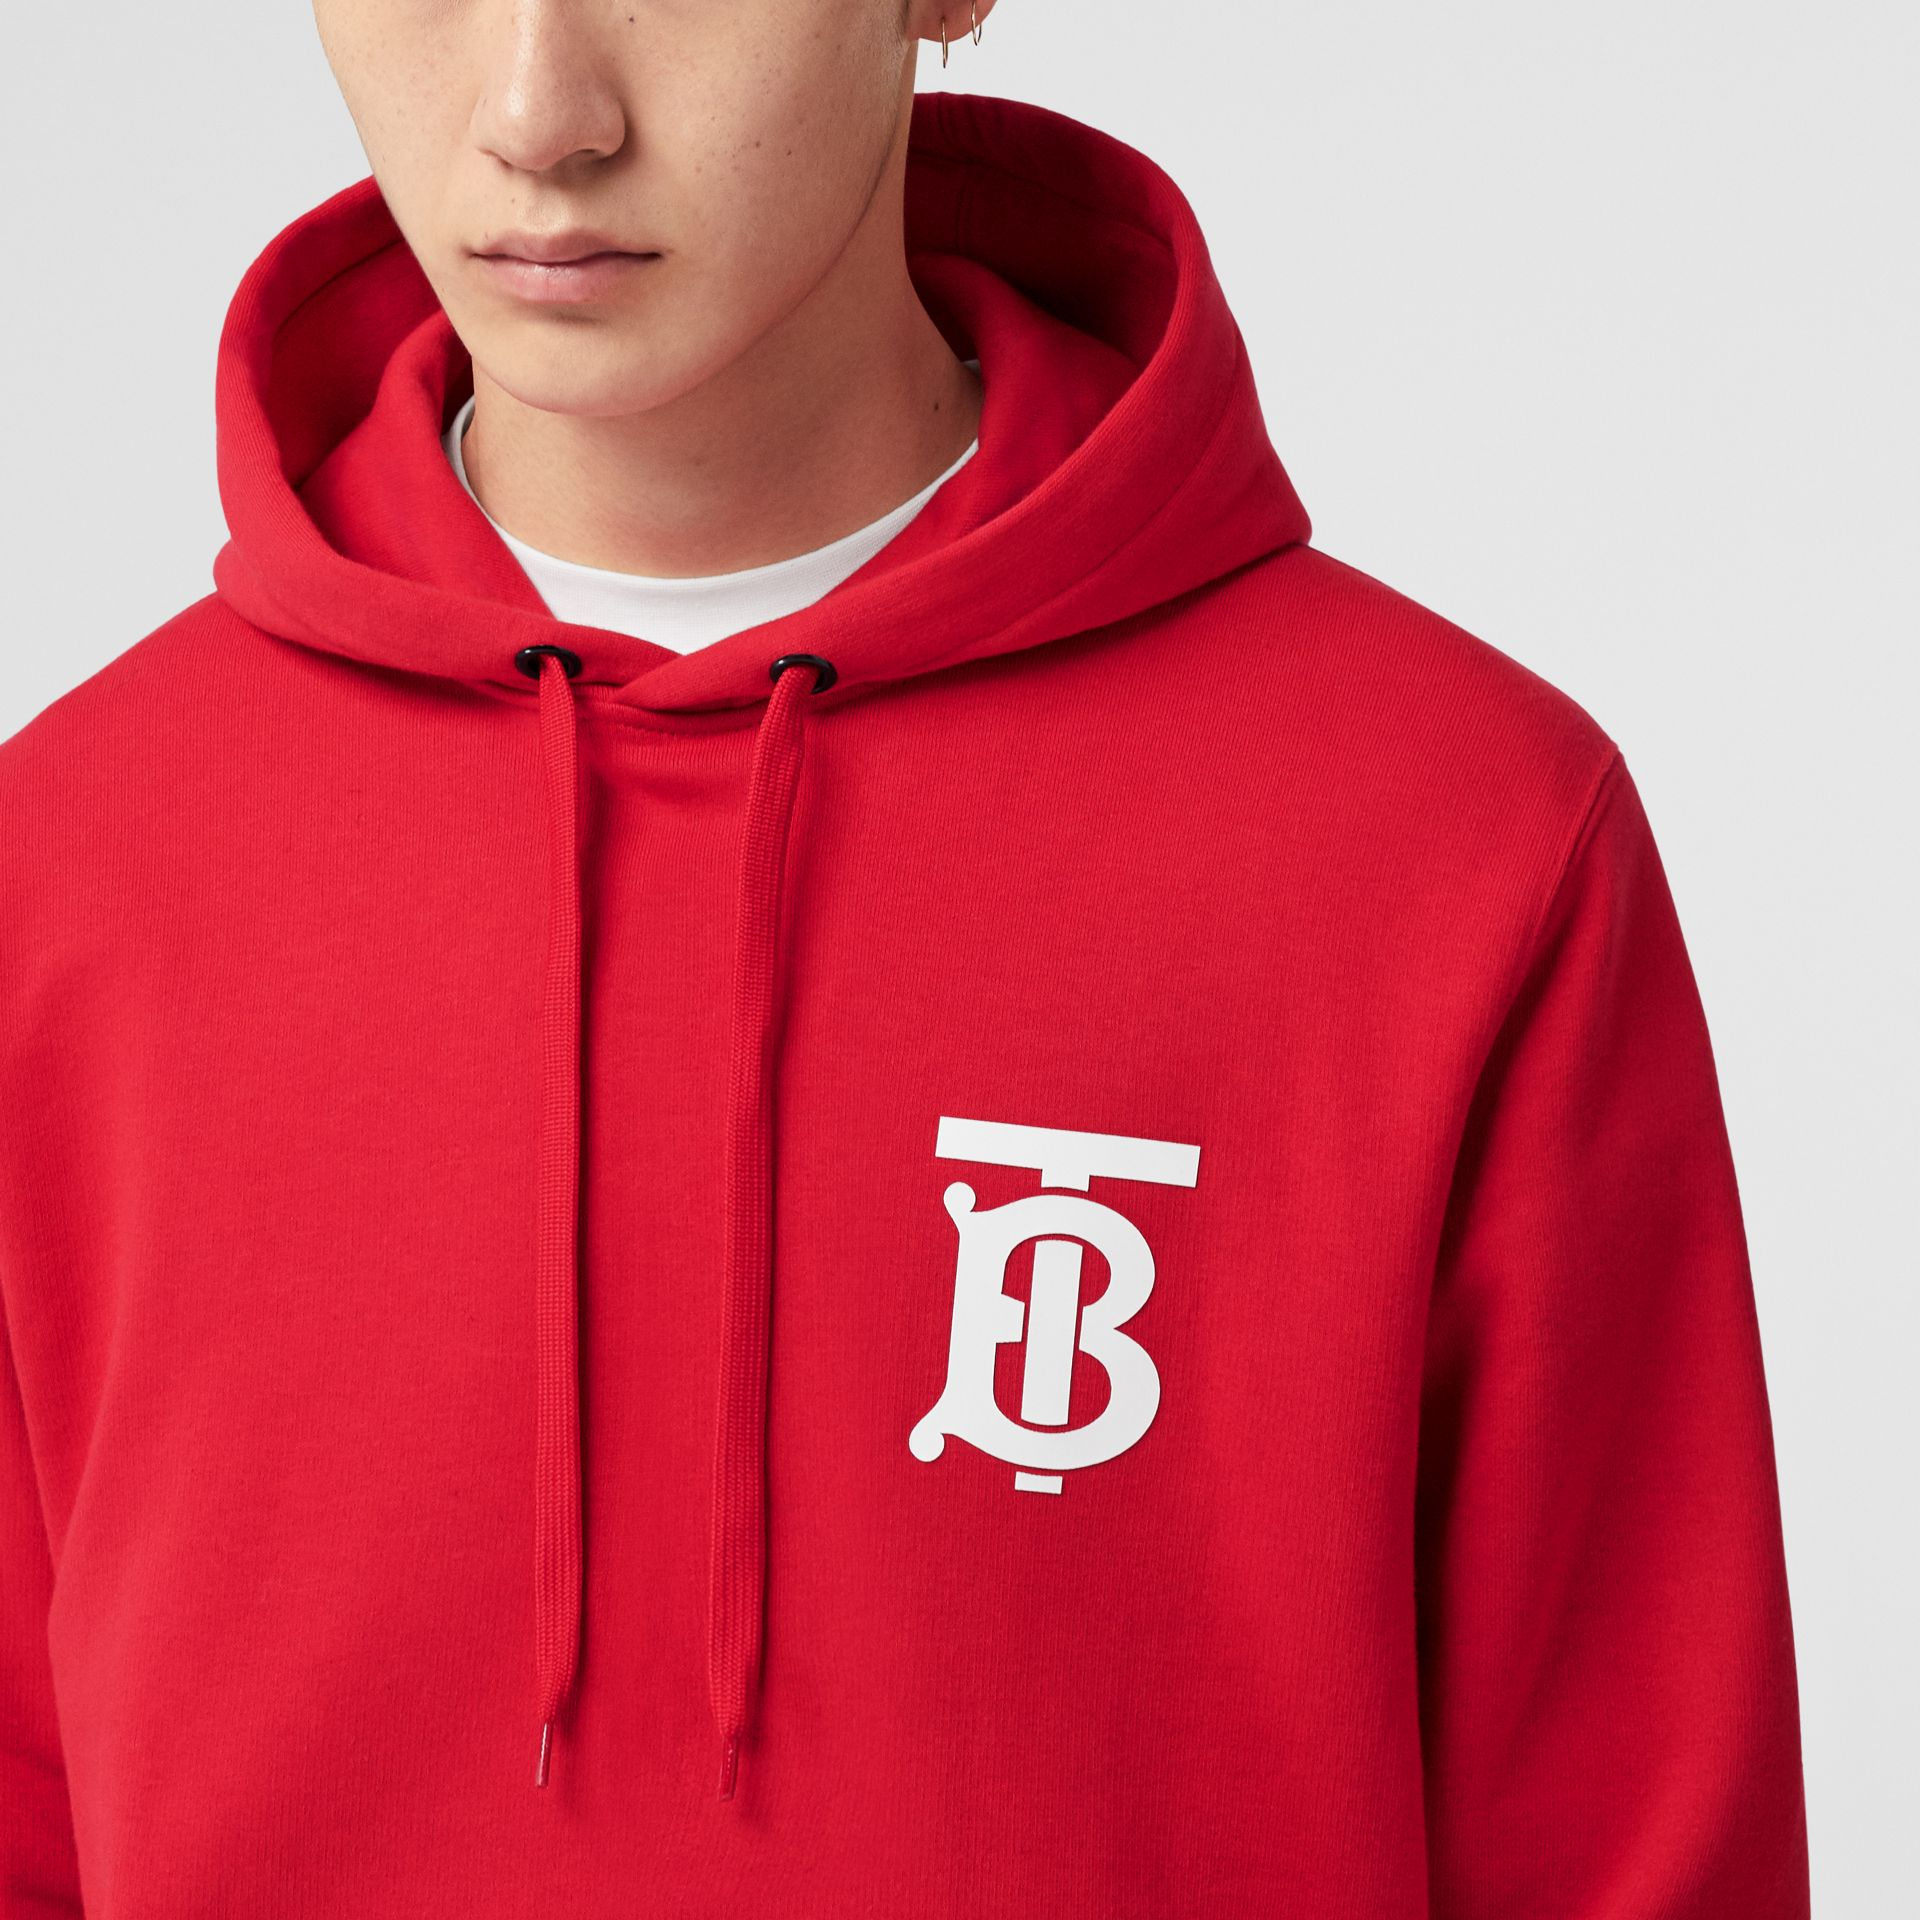 Monogram Motif Cotton Hoodie in Bright Red - Men | Burberry Hong Kong S.A.R - gallery image 1